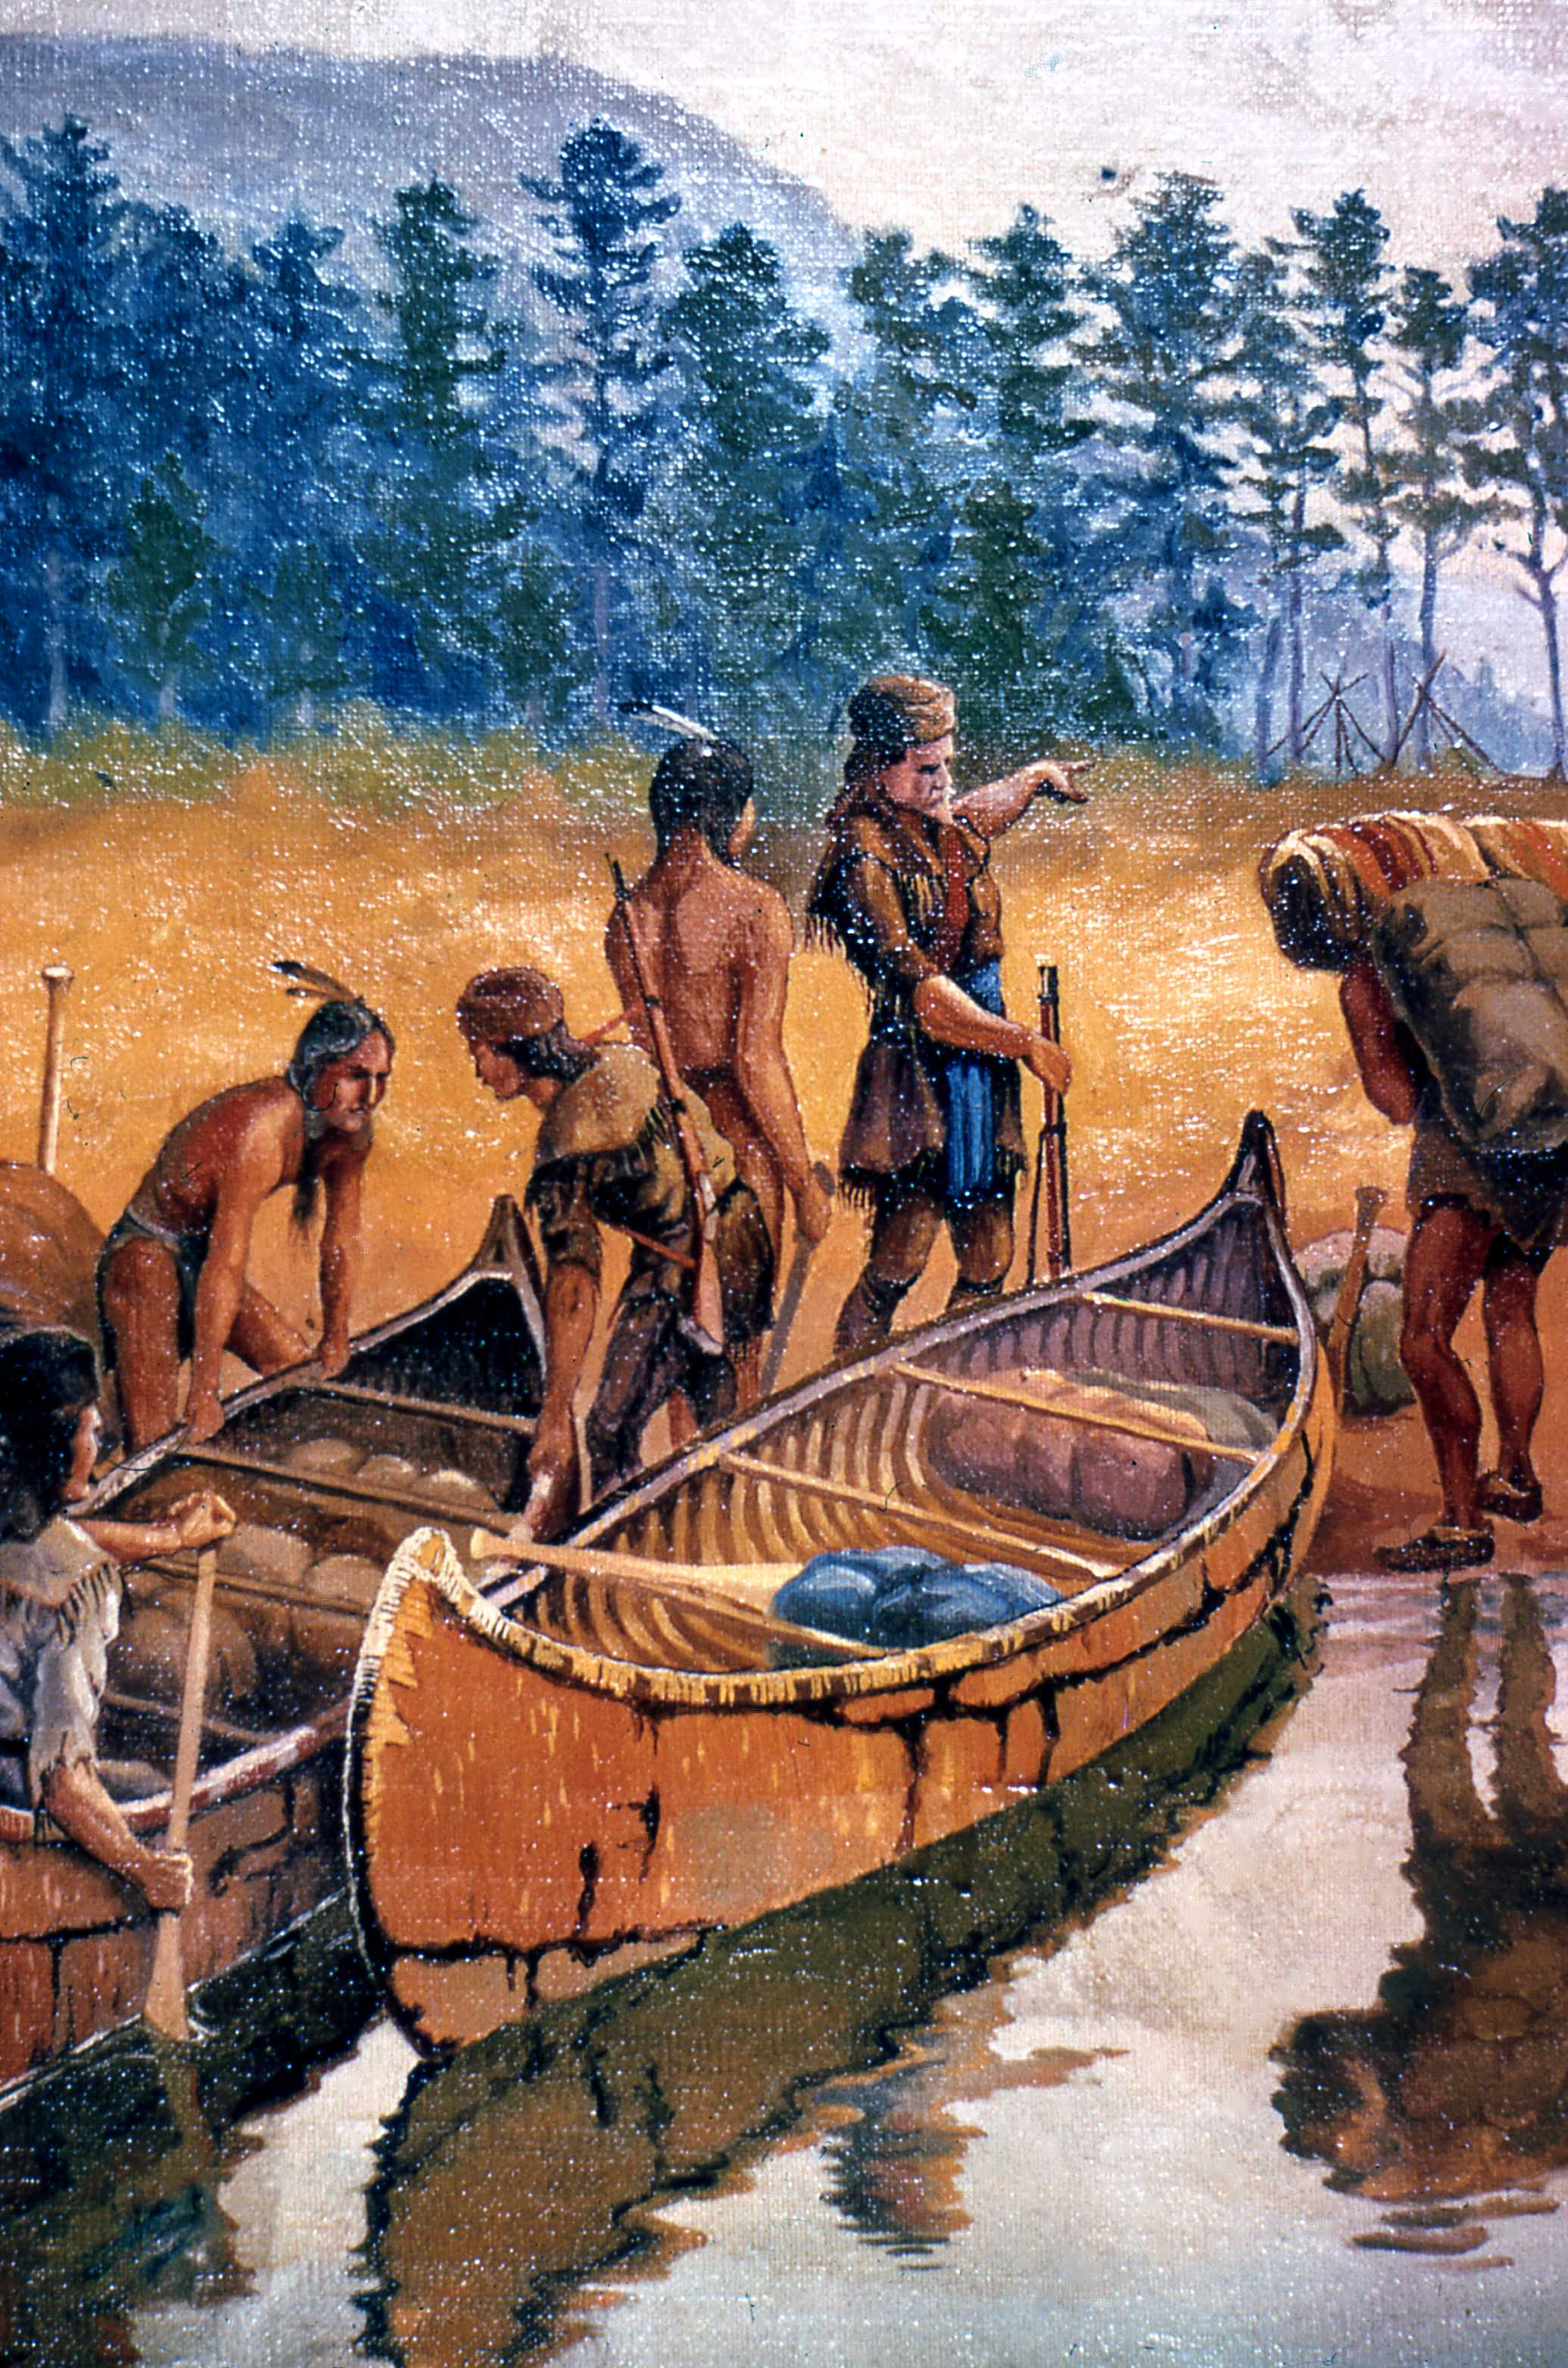 What Is Trade >> PHOTOS OF FUR TRADE CANOES